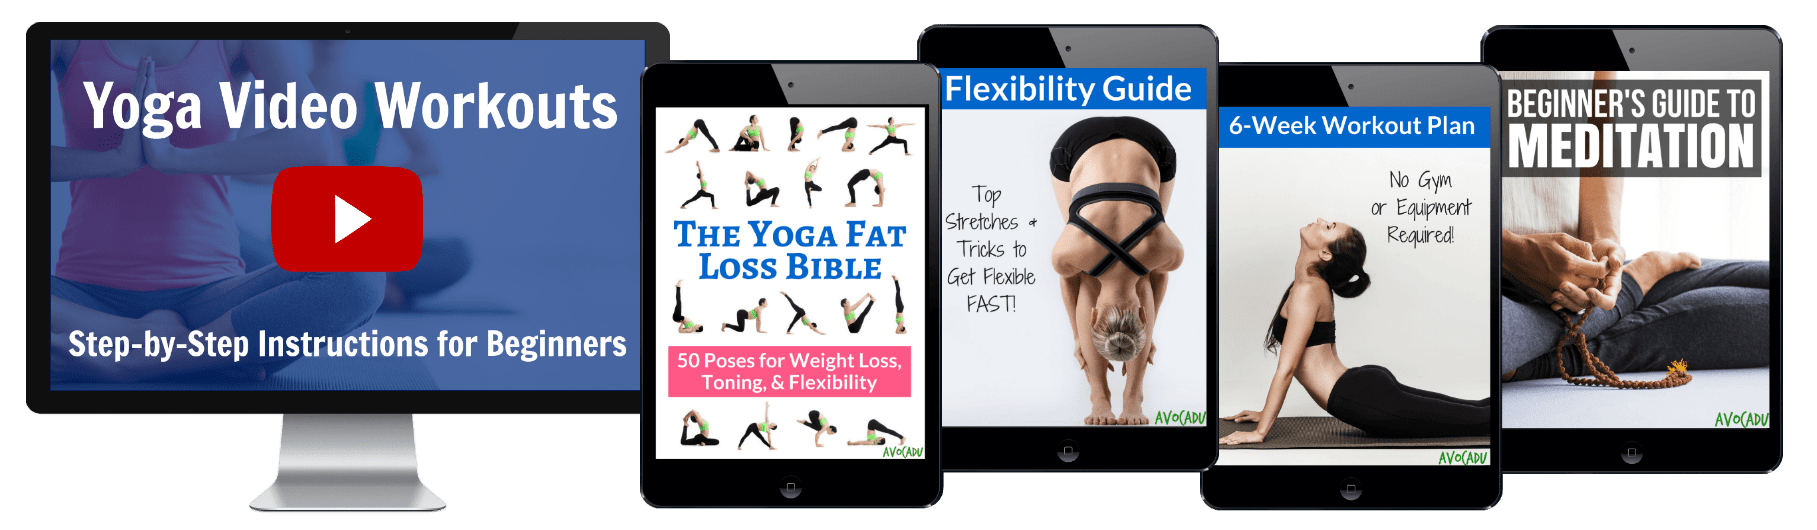 yoga fat loss bible video bundle by avocadu